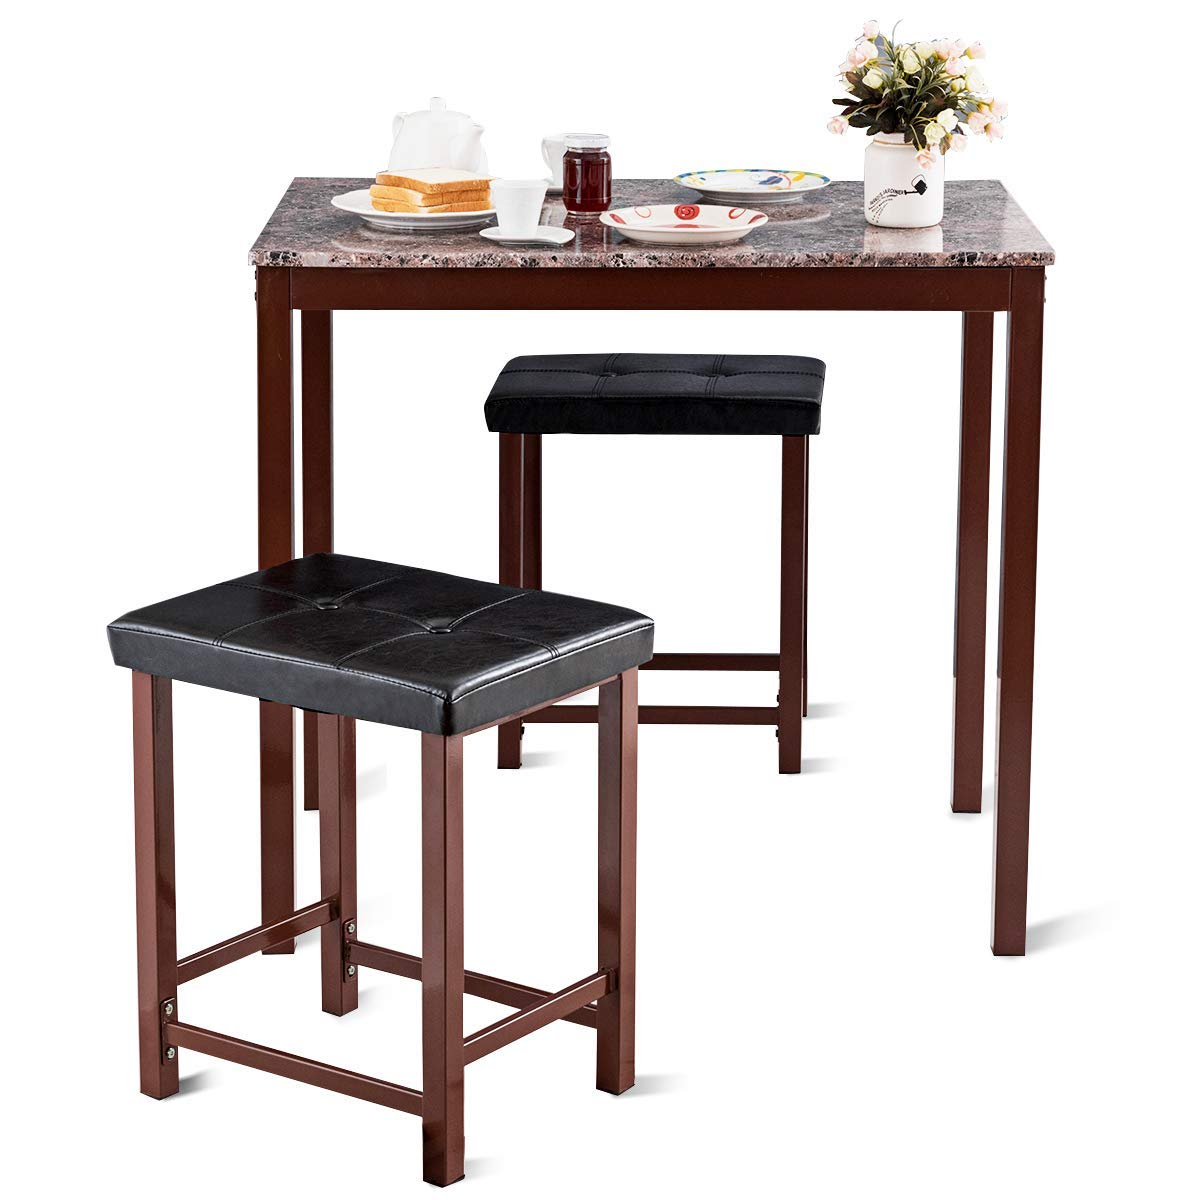 Amazon com giantex 3 pcs counter height dining set faux marble table 2 chairs kitchen bar furniture secondary color table chair sets